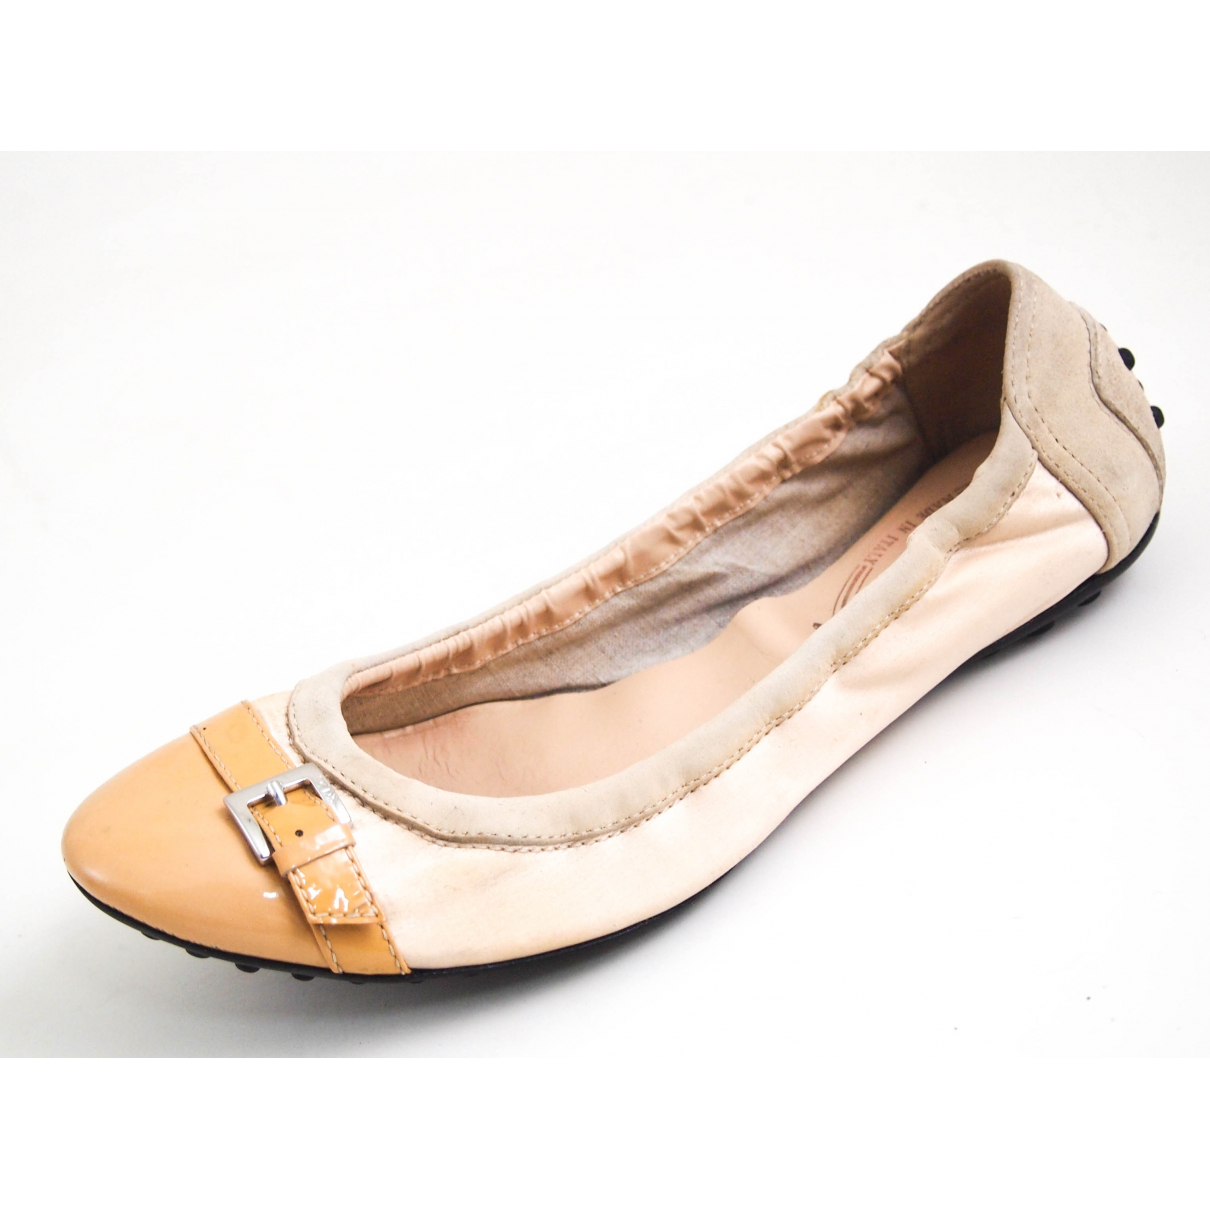 Tod's N Beige Patent leather Ballet flats for Women 36.5 EU